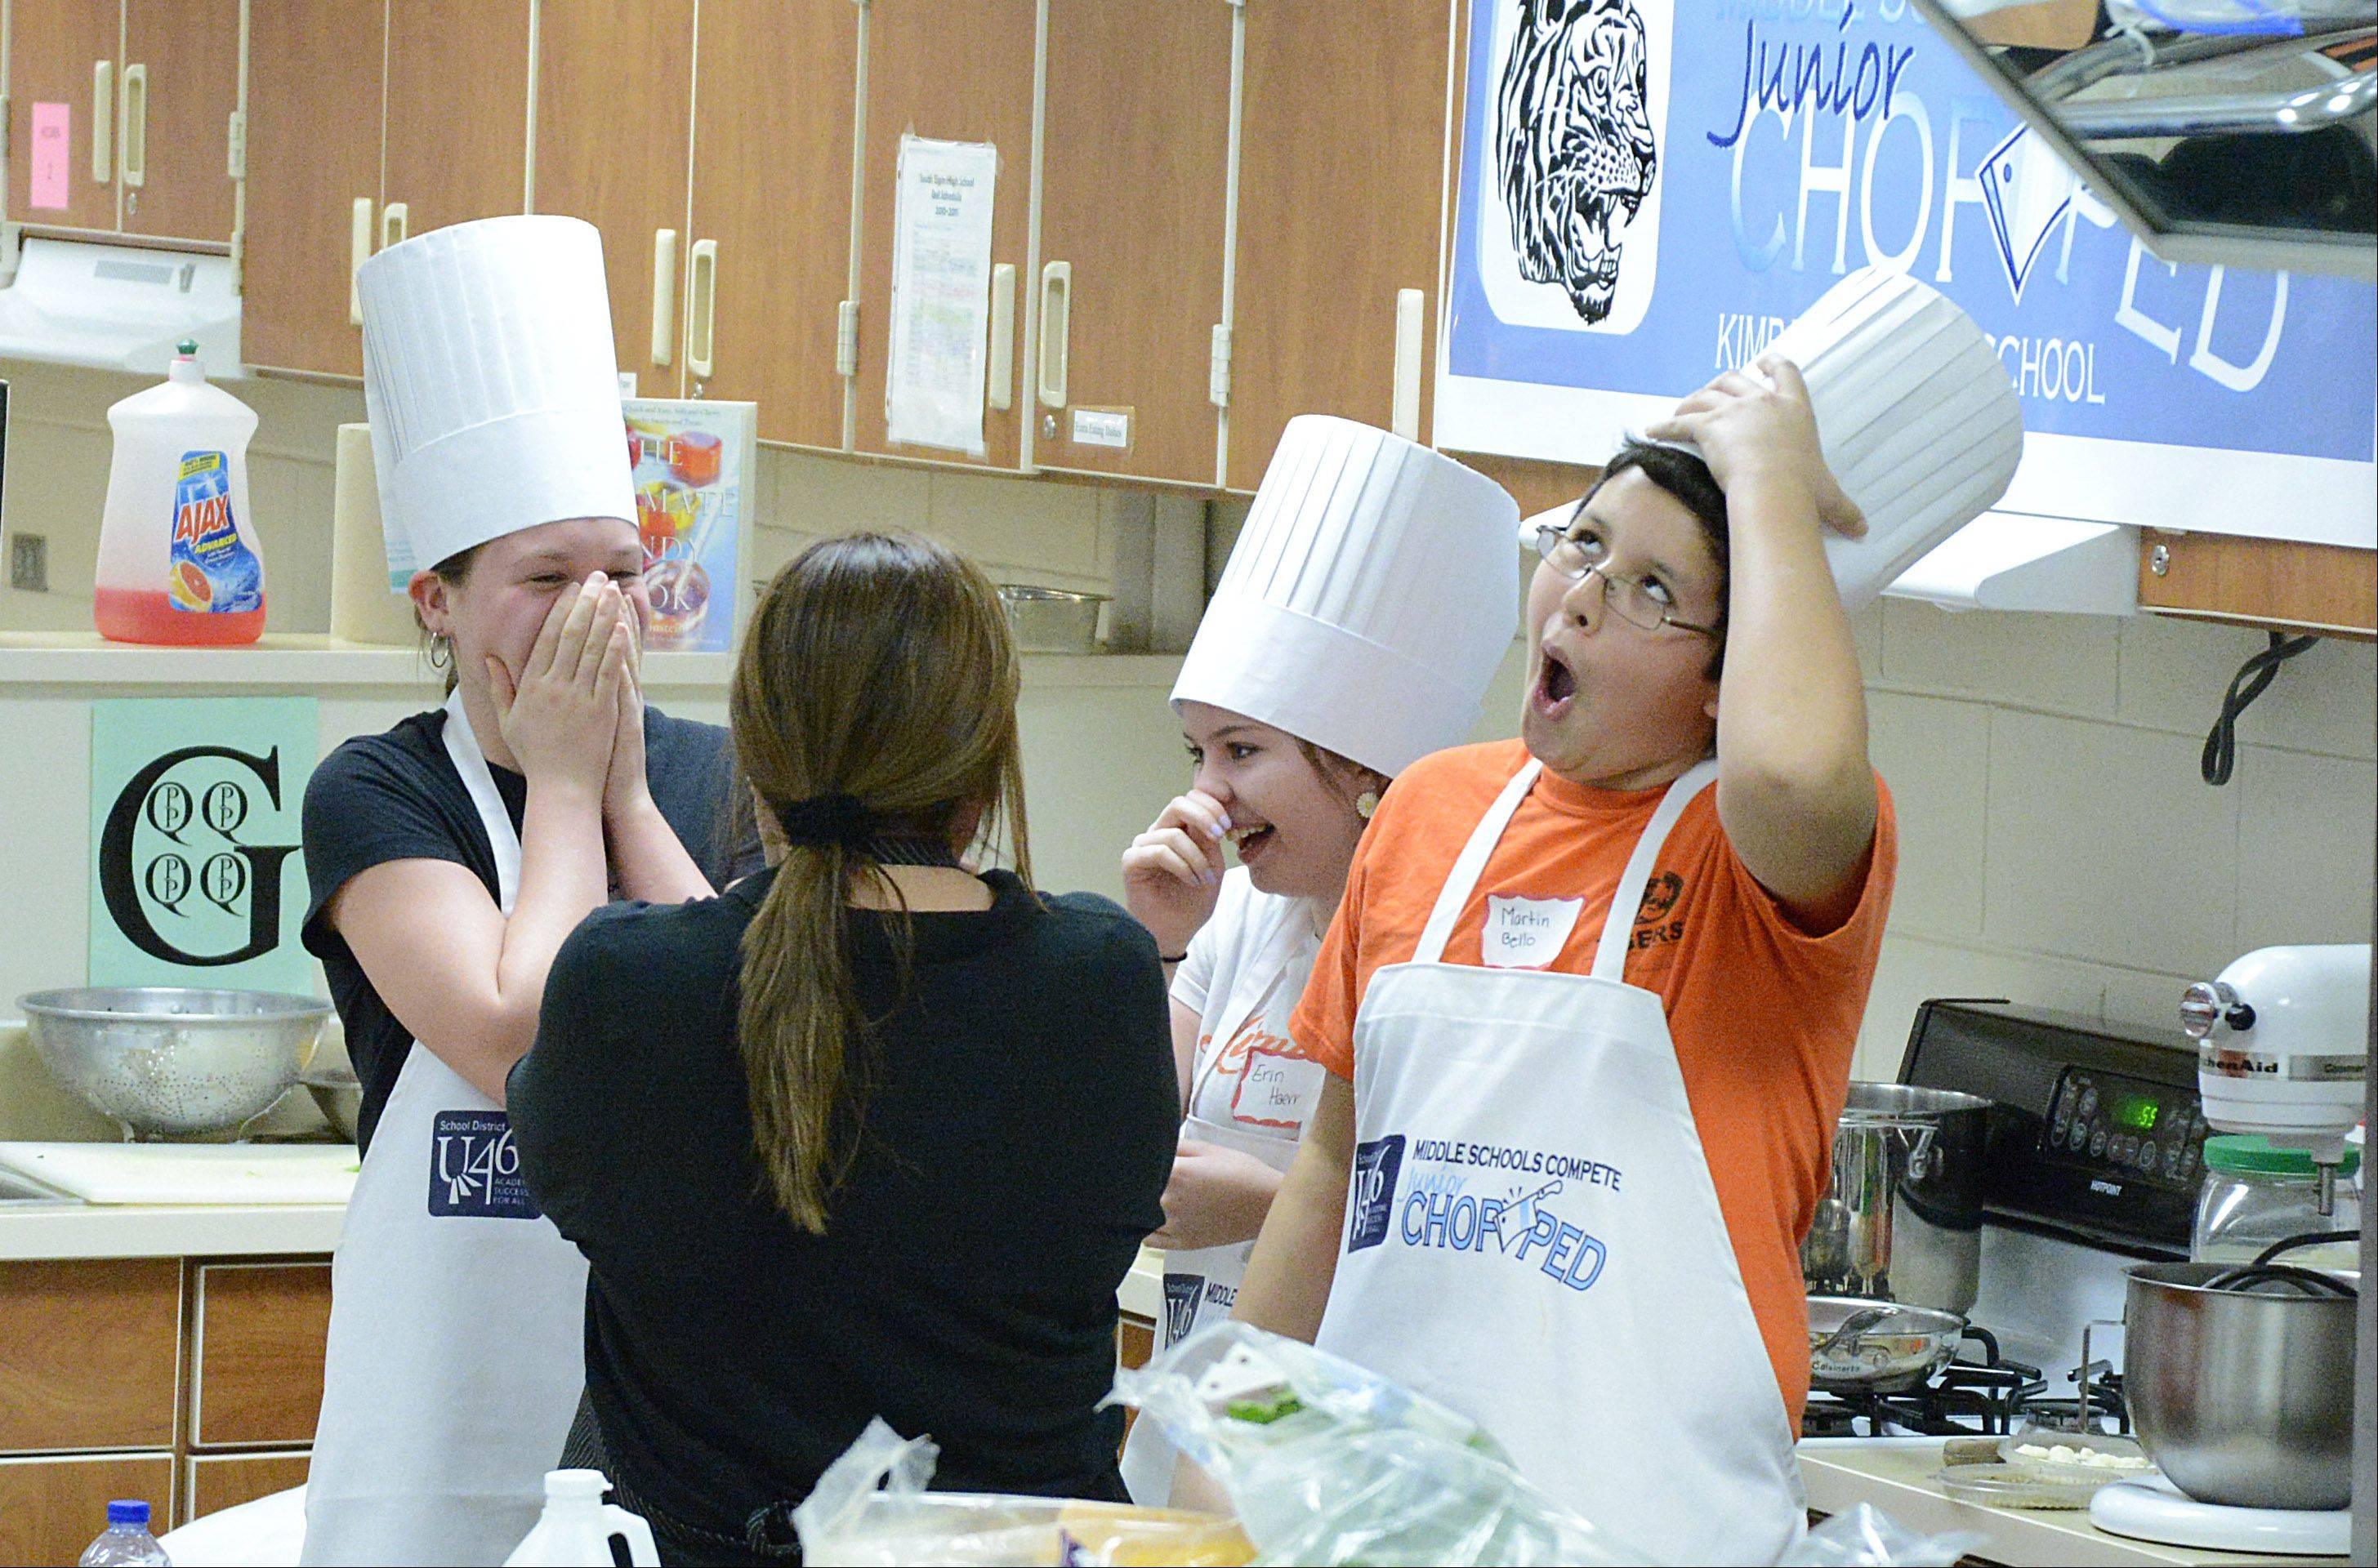 "The ""Swaggy Choppers"" team of Kimball Middle School, Allison Marsh, 13, Erin Haerr, 13, and Martin Bello, 14, react to being named the winners of the U-46 Junior Chopped competition at South Elgin High School on Saturday. The students, all of Elgin, rejoiced with their coach, Maria Martinez, back to camera, after taking the win with their Mediterranean and Italian themed lunch combo. Career and Technical Education and Nutrition Serves partnered for the event for Middle School FACS Rotation students to showcase their culinary skills at the competition based on the Food Network show, ""Chopped."""